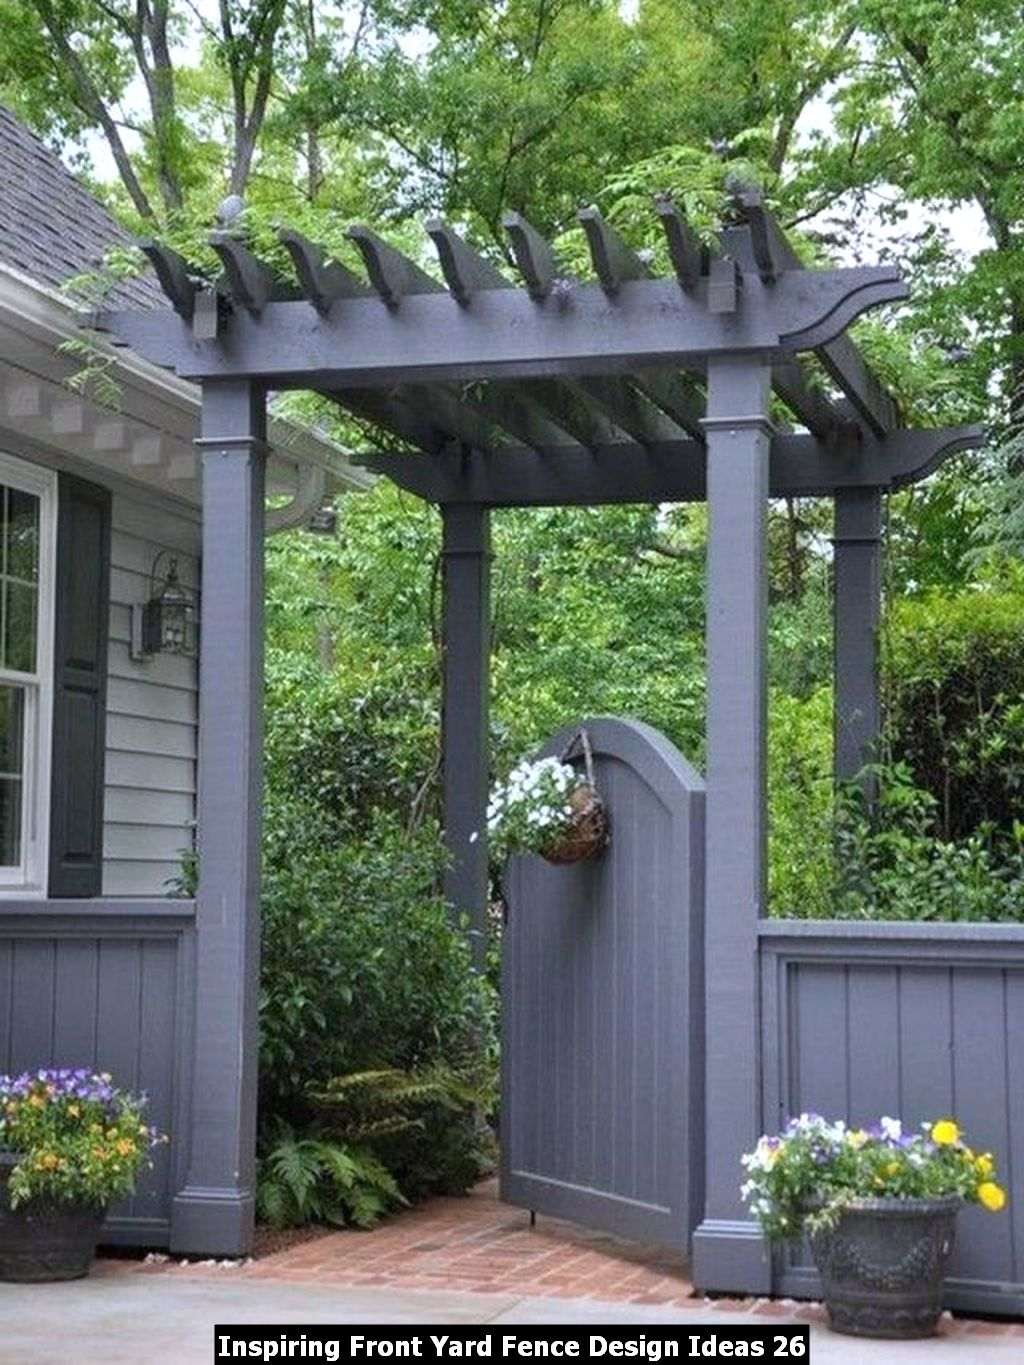 Inspiring Front Yard Fence Design Ideas 26